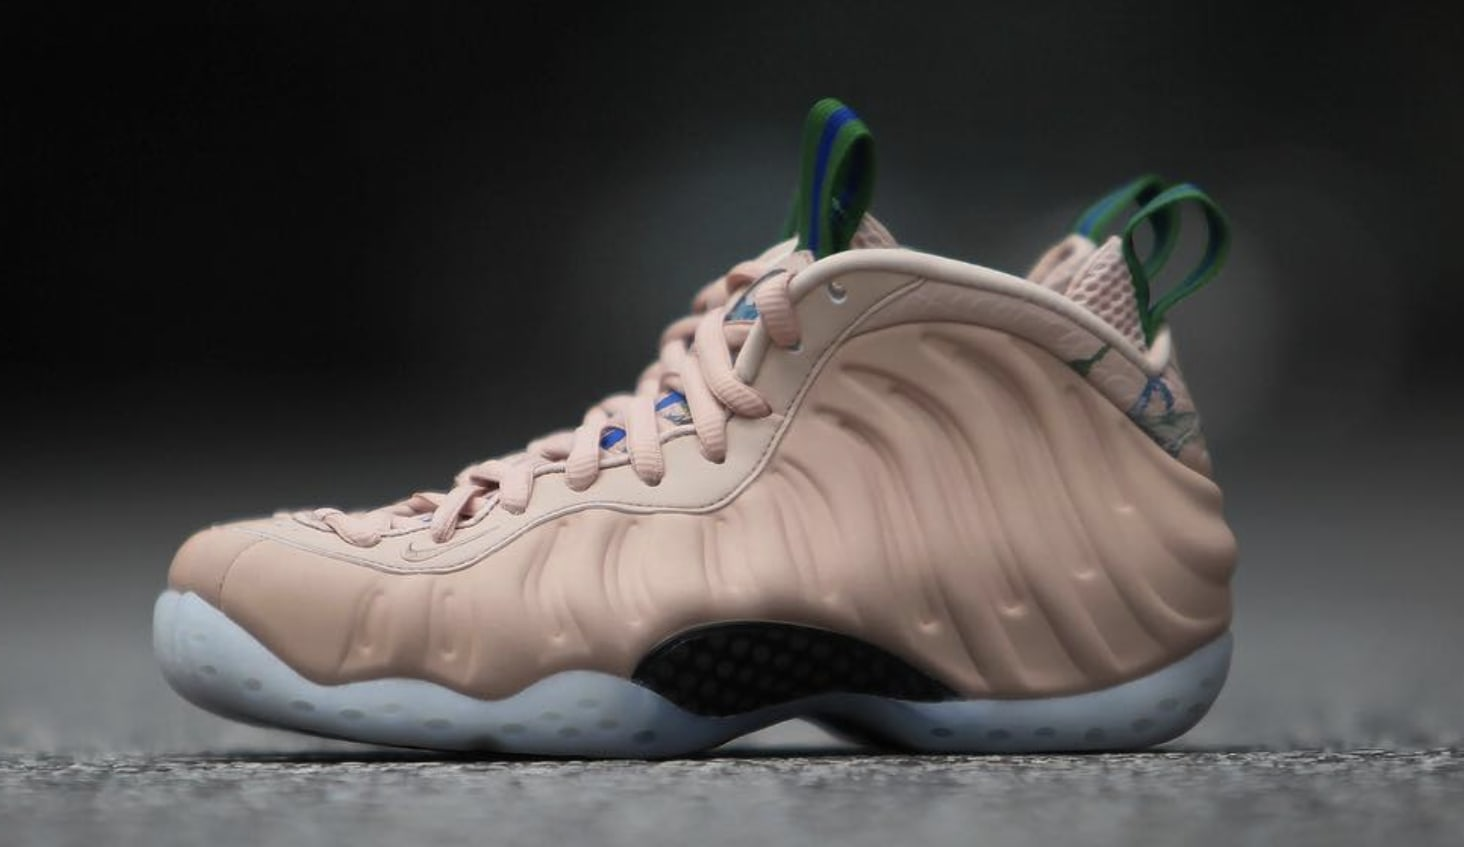 WMNS Nike Air Foamposite One 'Particle Beige' AA3693-200 (Lateral)